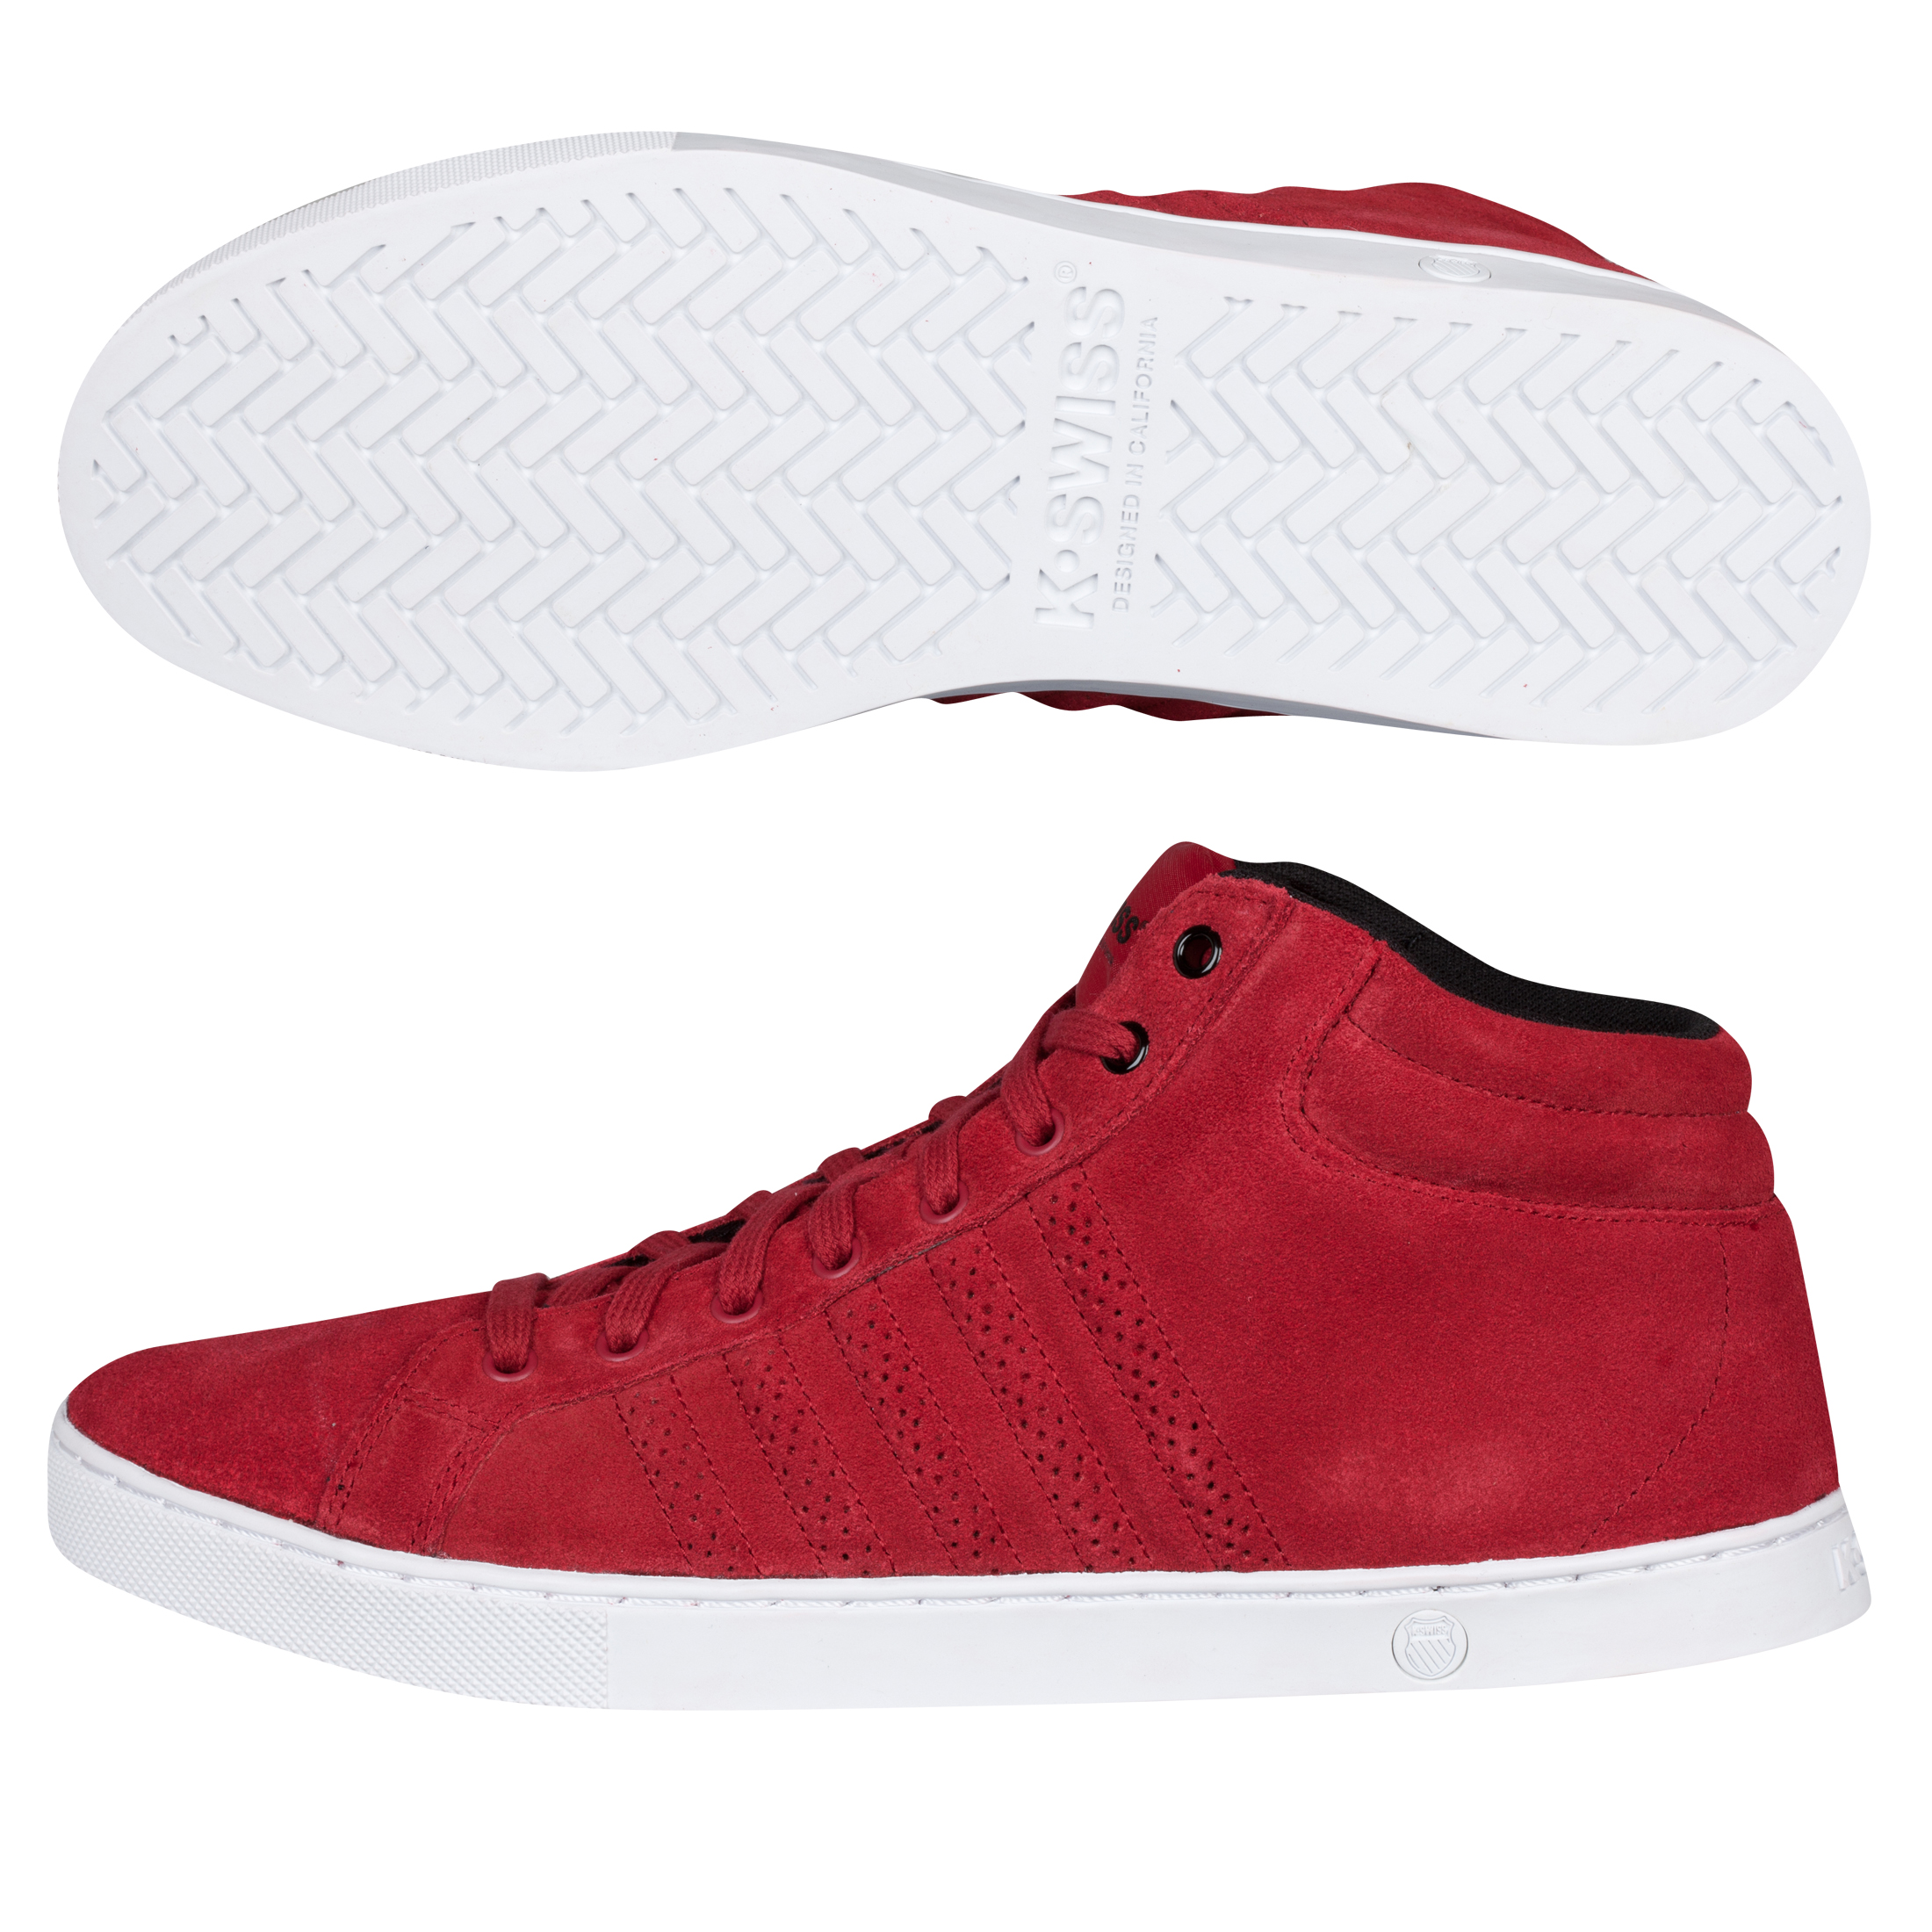 K Swiss K-Swiss Adcourt 72 Mid Suede Trainers - Varsity Red/White/Black